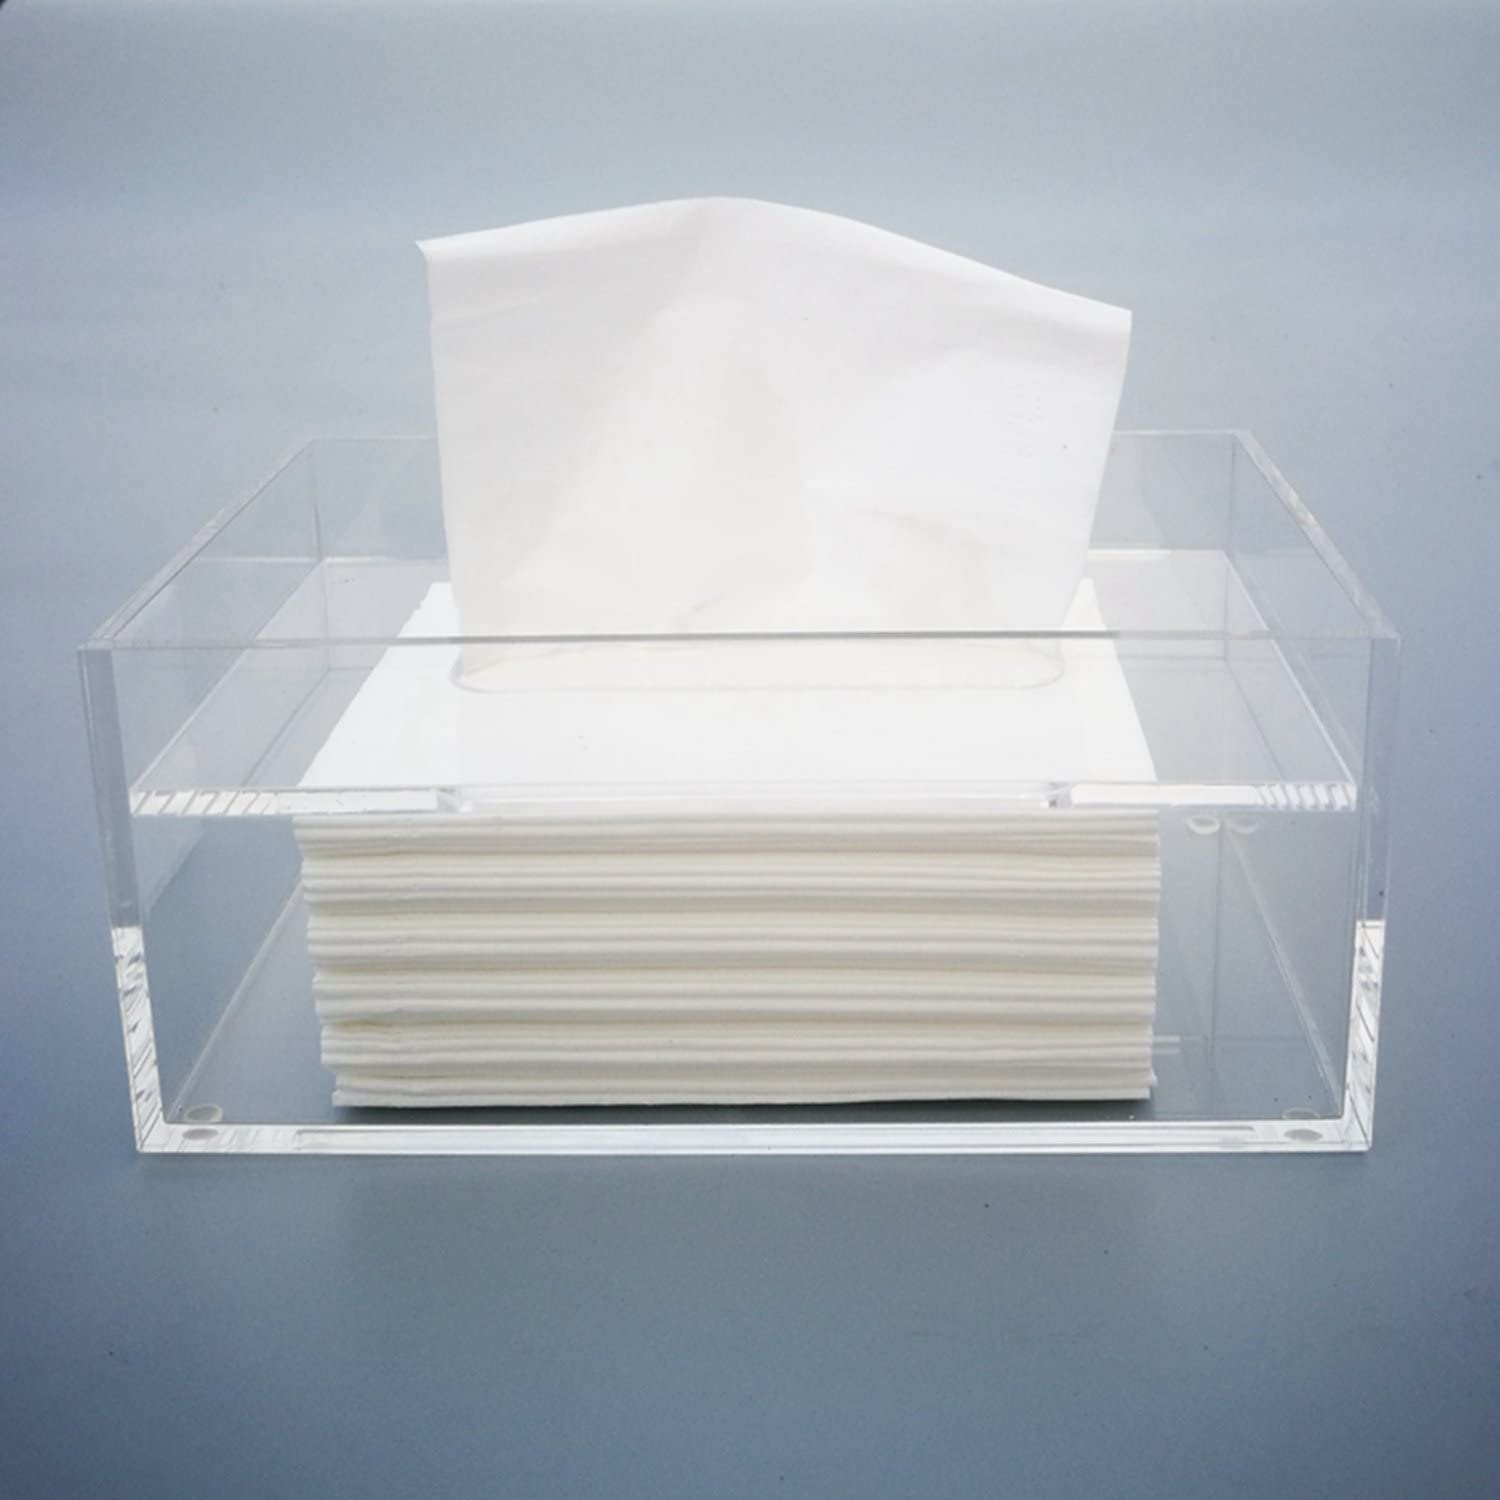 MYES Tissue Box Limited Special Price Manufacturer regenerated product Holder Napkin Acrylic Dispenser Clear Rectangle